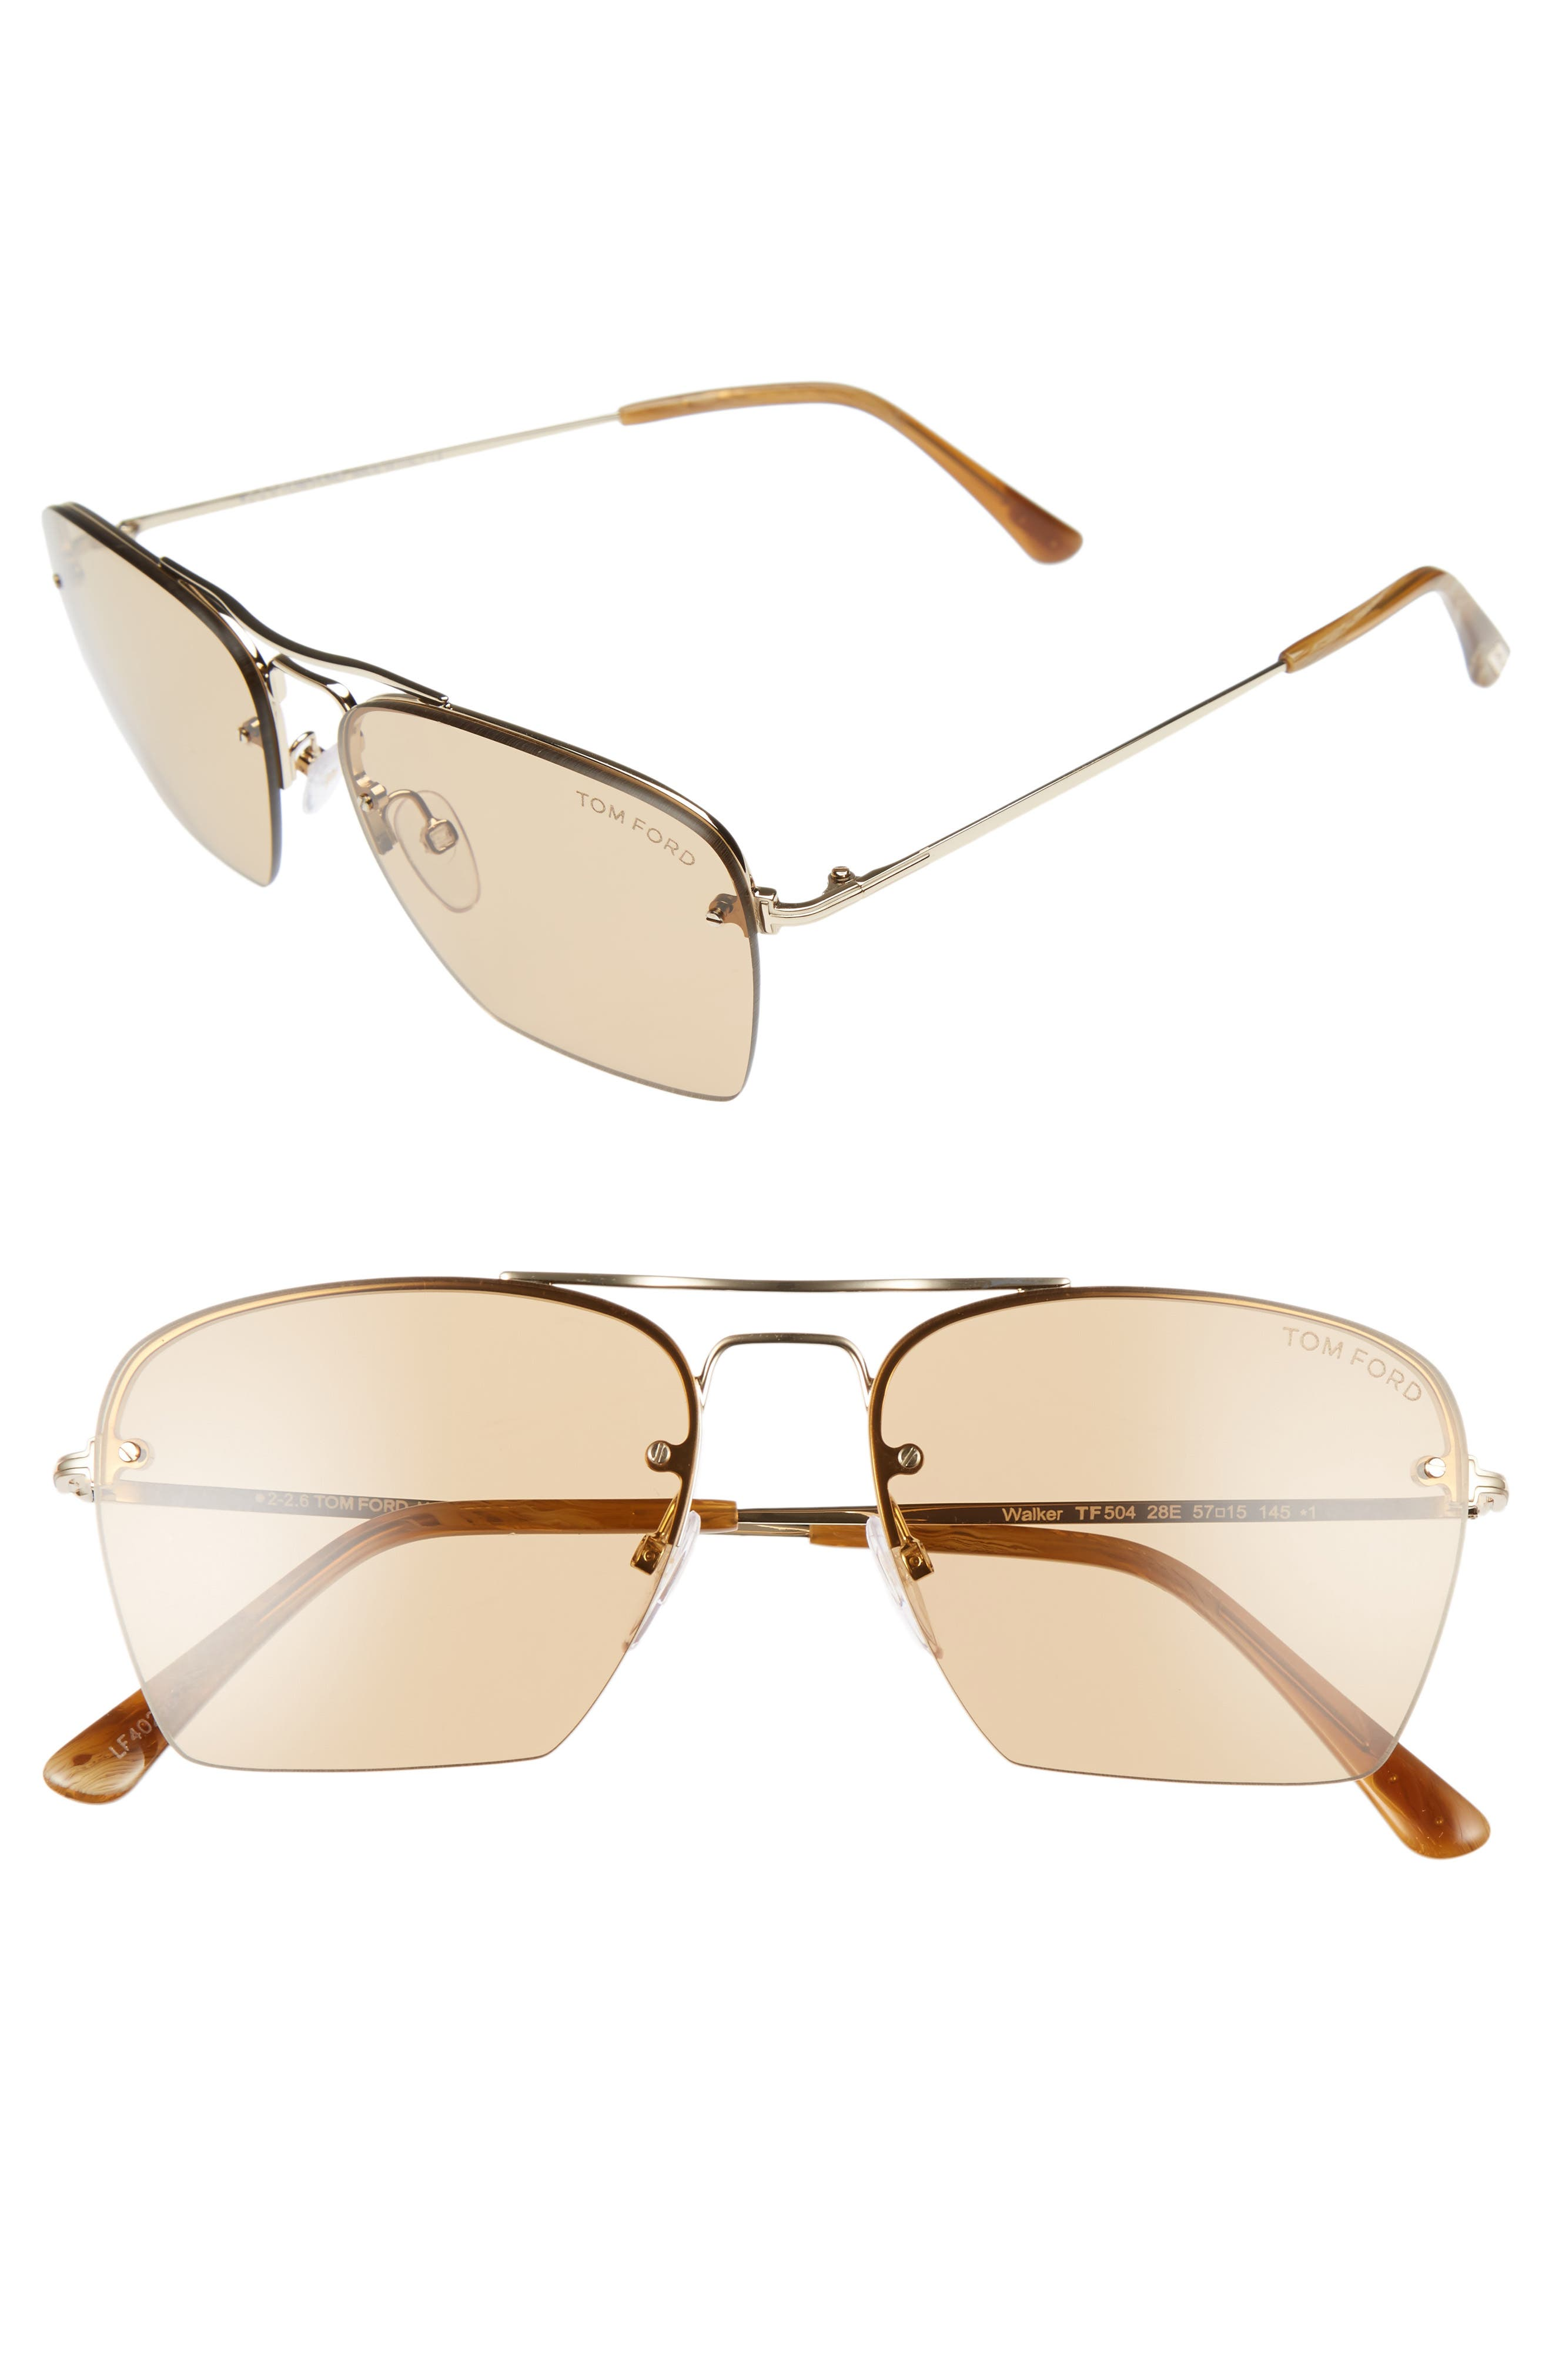 Alternate Image 1 Selected - Tom Ford Walker 57mm Semi Rimless Square Sunglasses